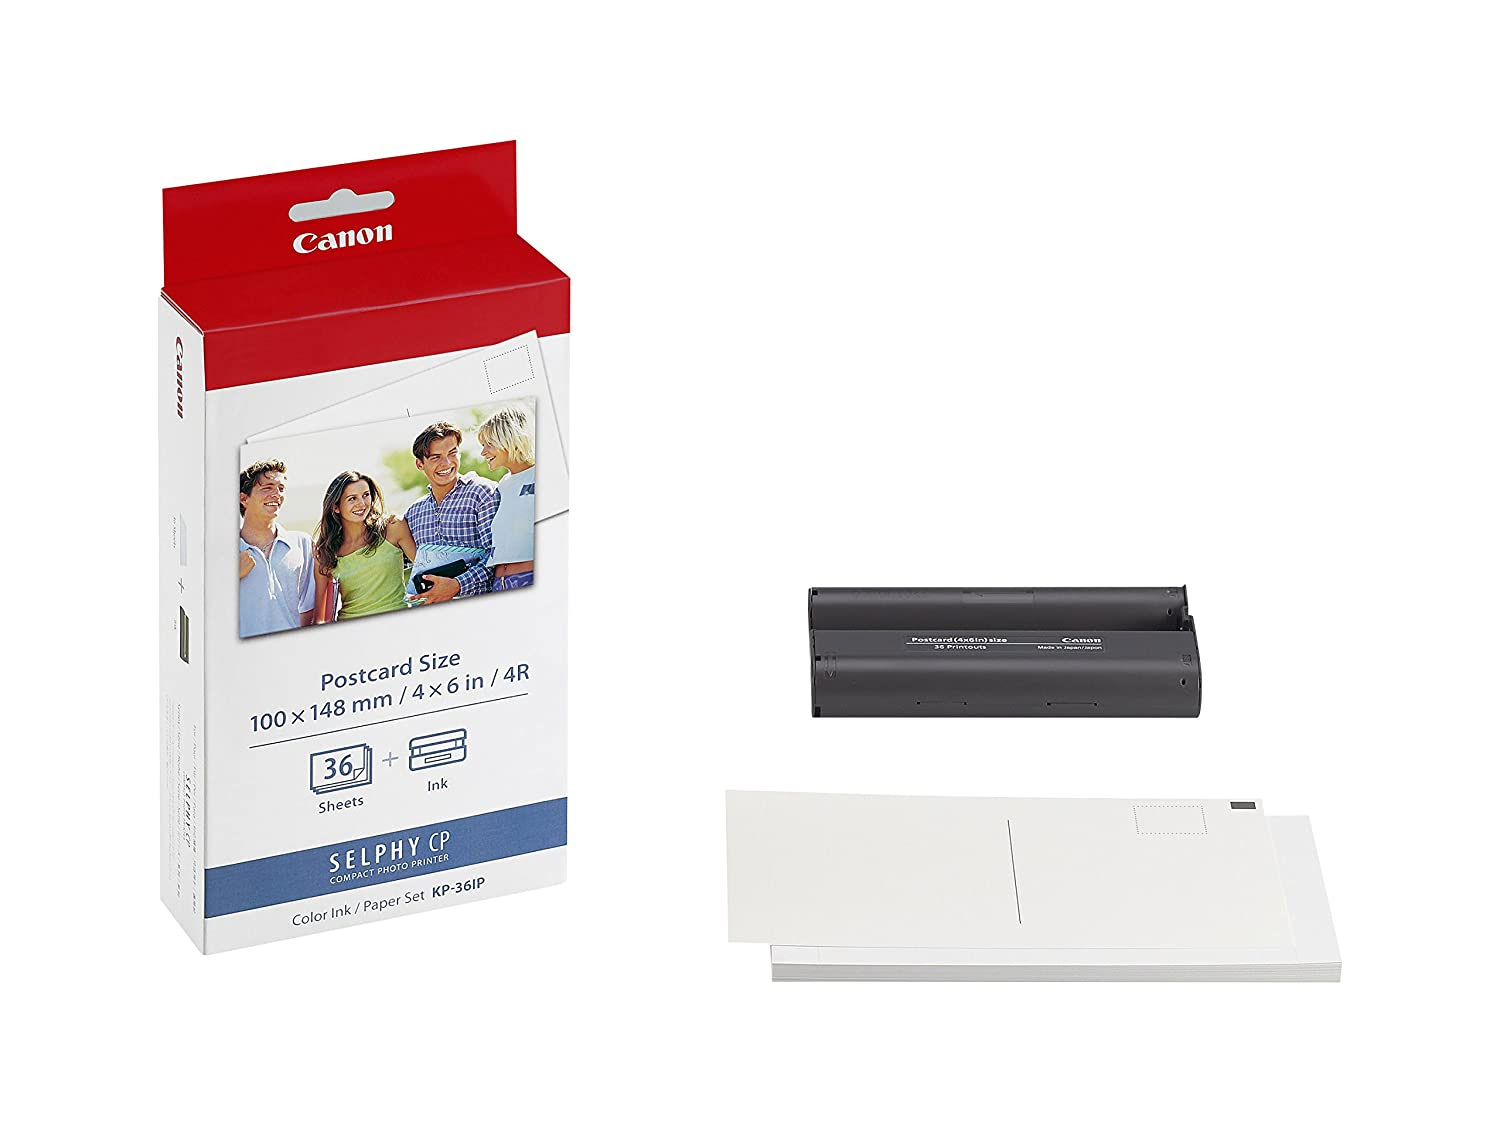 Canon Selphy Ink and Postcard Paper Set (7737A001) Canon - Supplies 7737A001AB